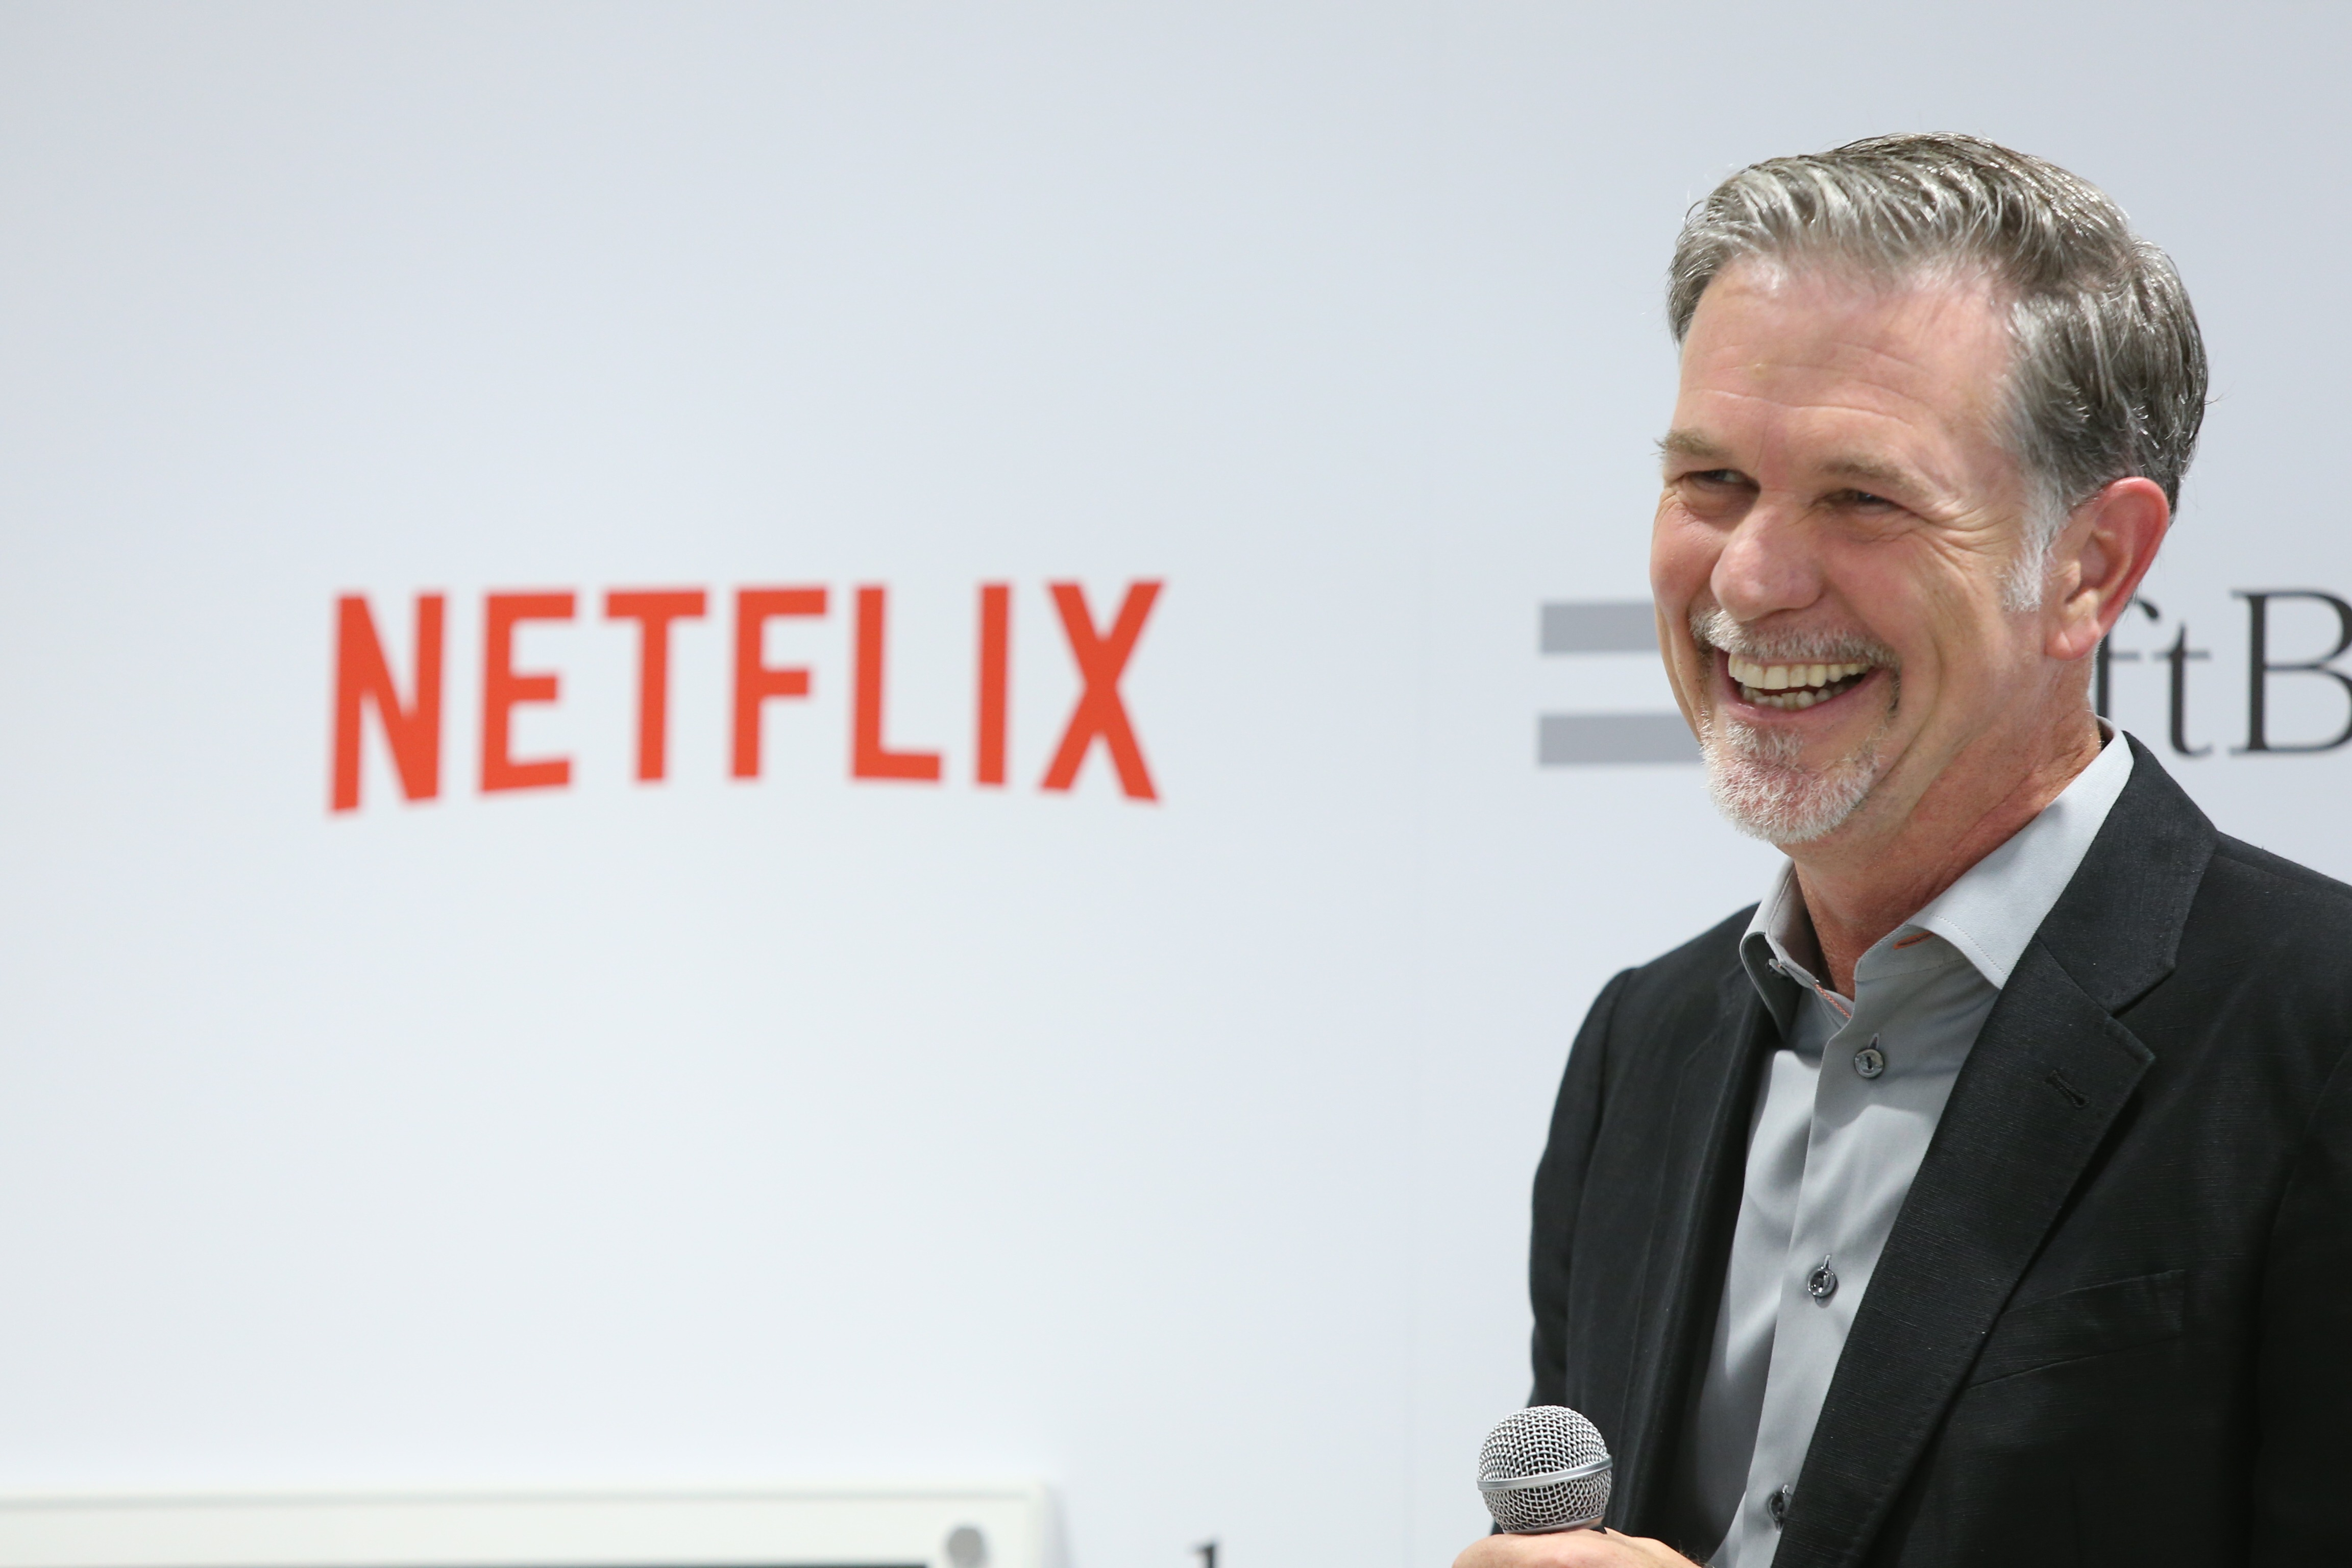 Netflix Partners With SoftBank For Japan Launch